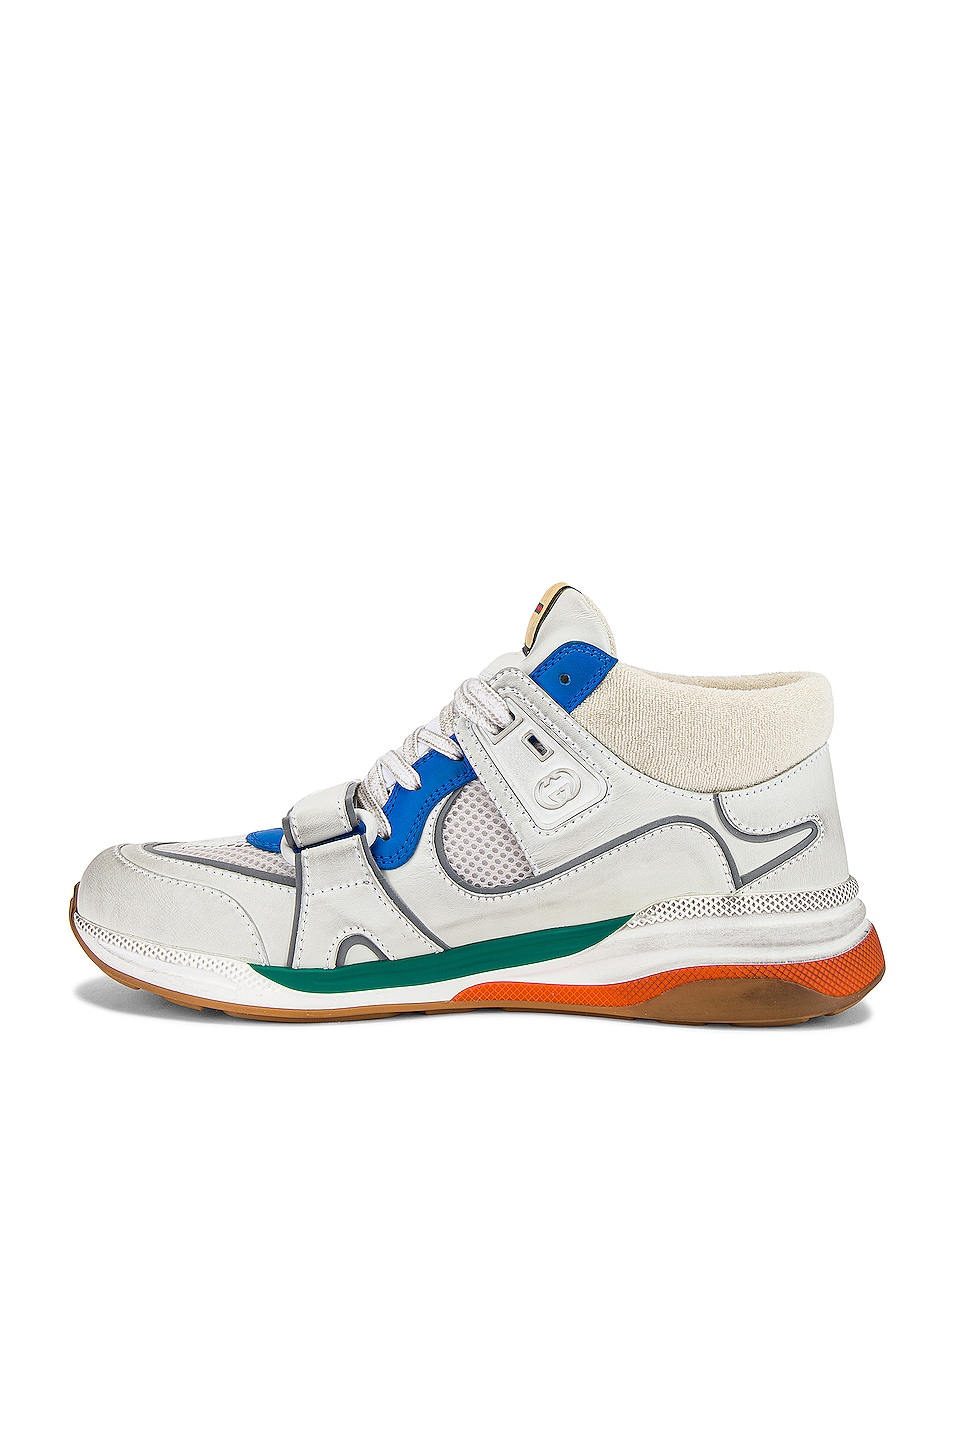 Image 5 of Gucci G Line Mid Low Top Sneaker in Blue & Silver & White